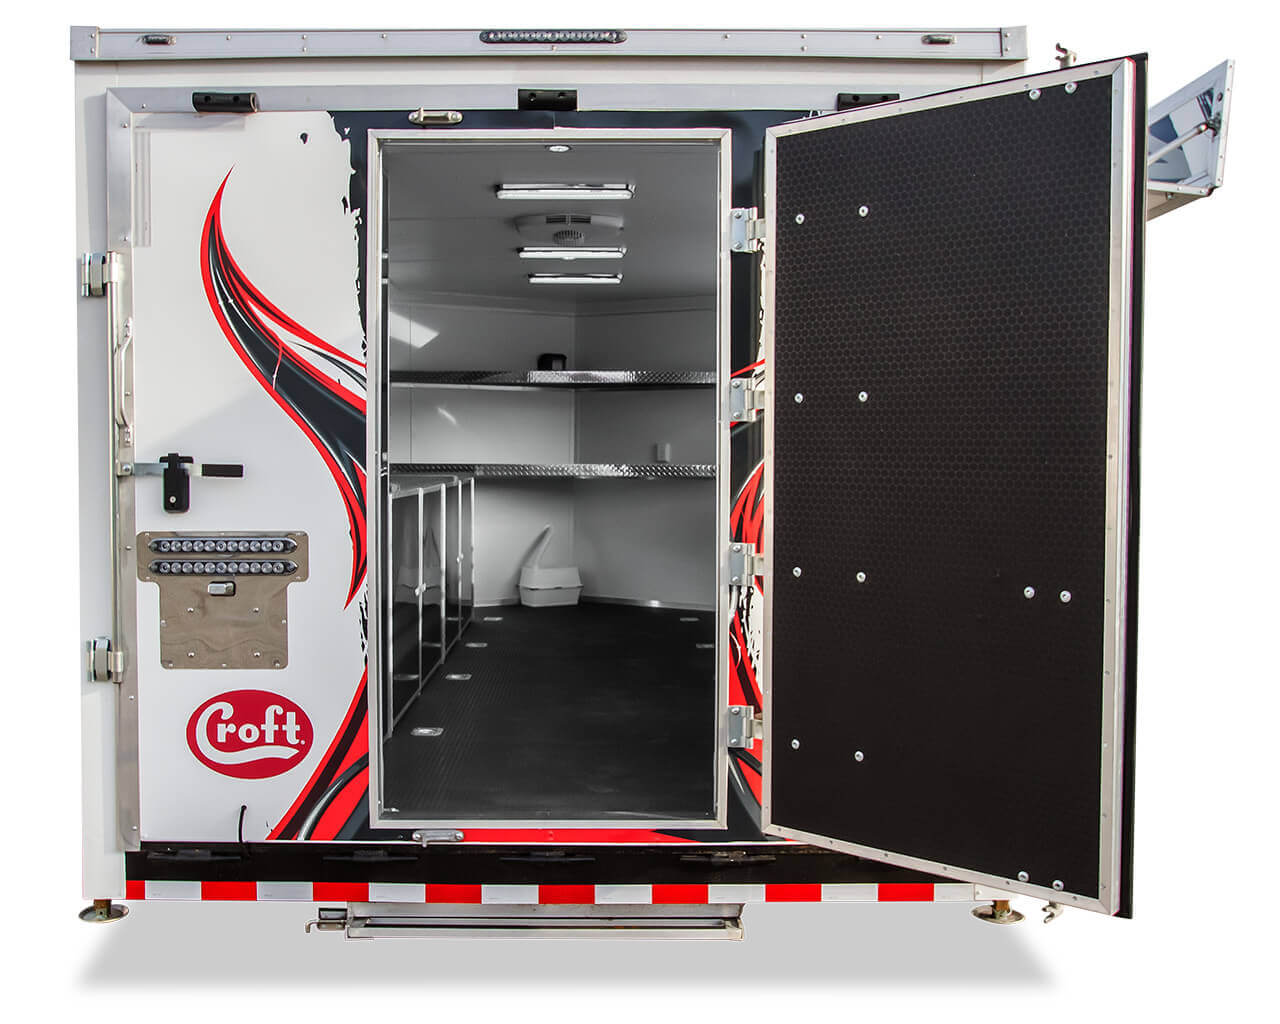 Nitro Arenacross Trailer with Croft Trailer Supply